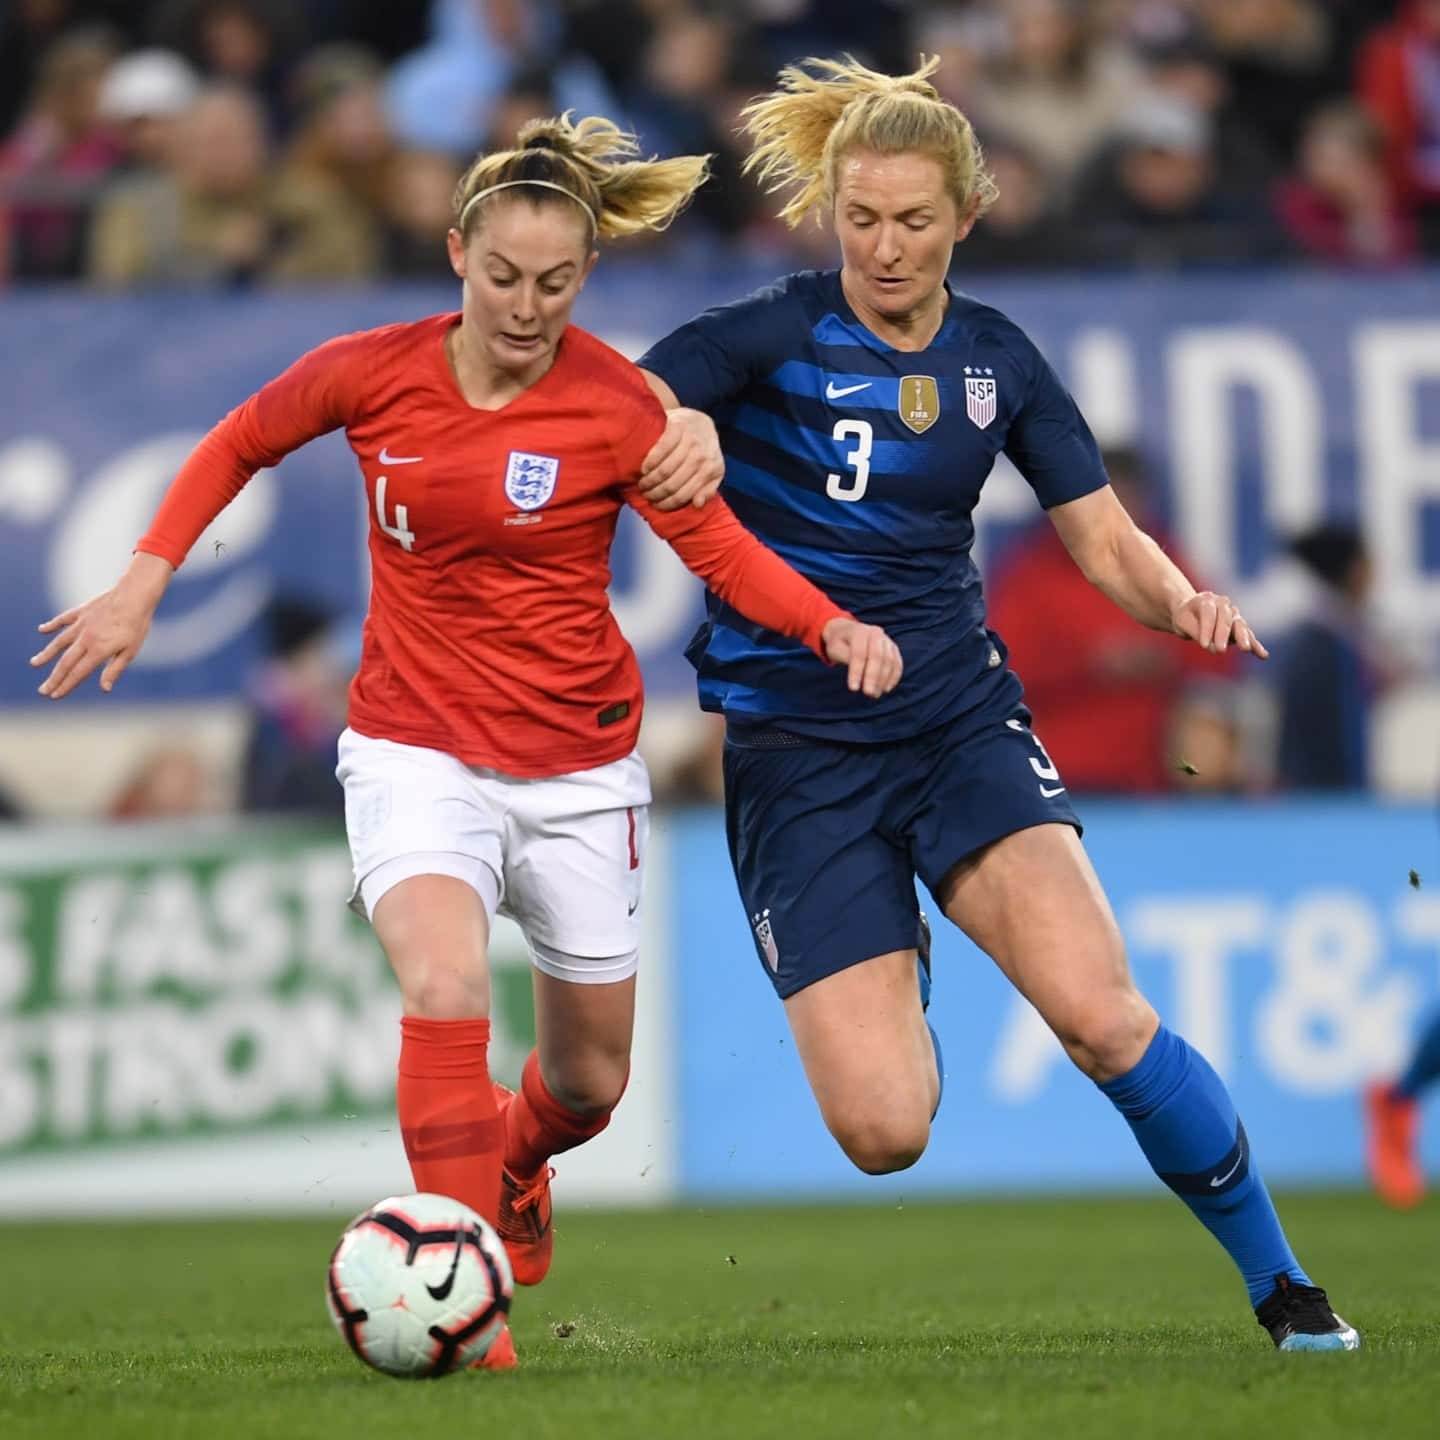 USA vs. England - Match History & Preview - Five Things to Know